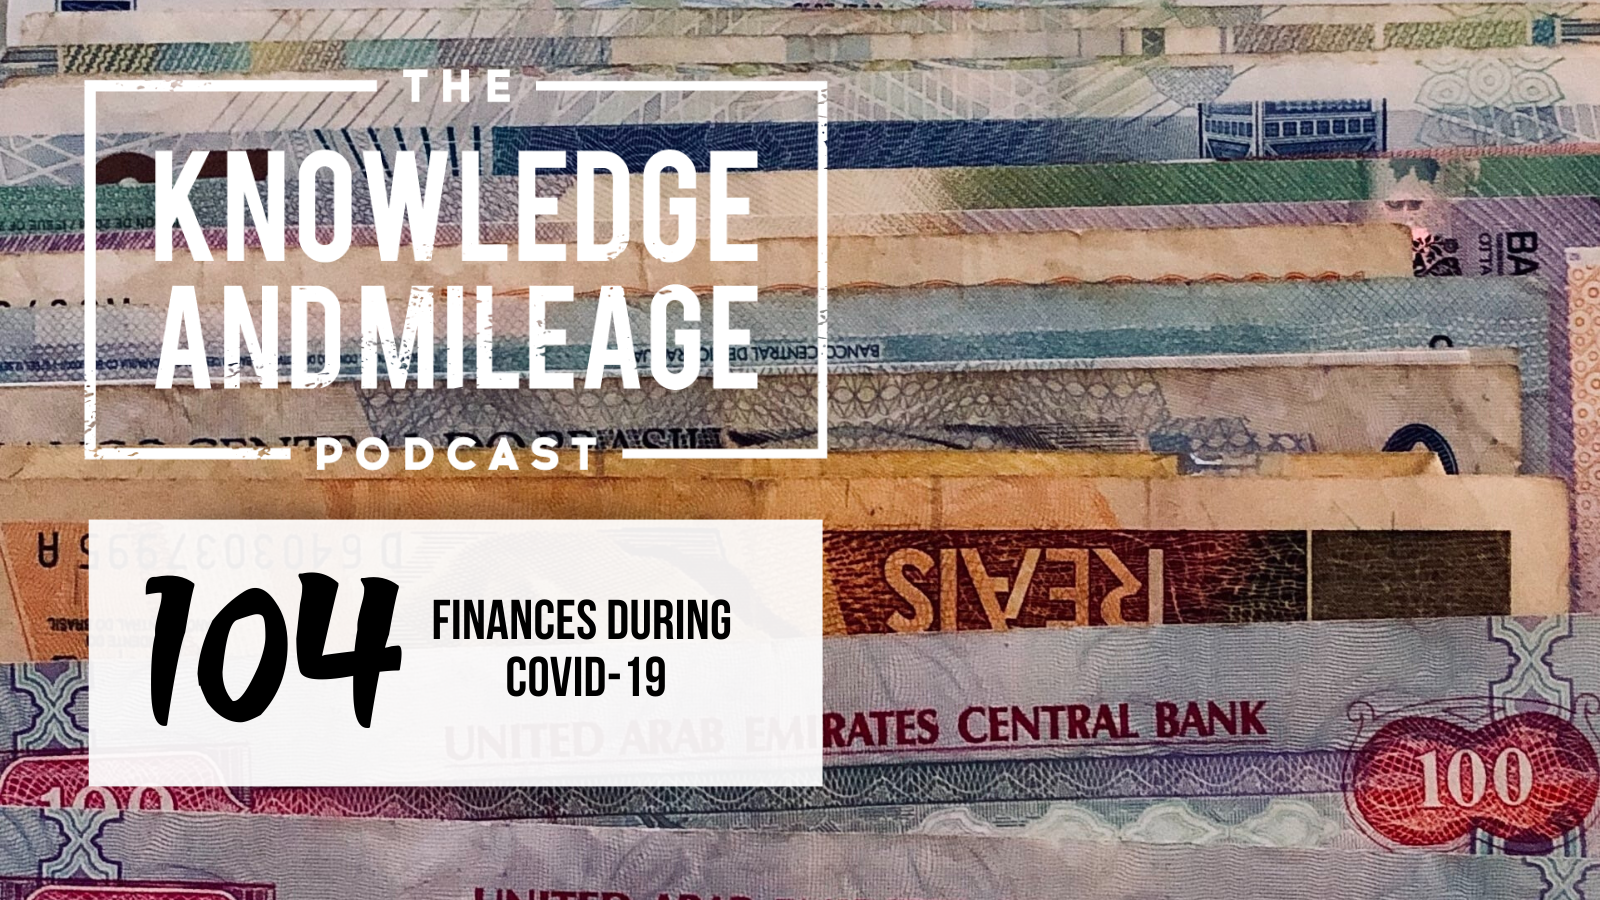 EP 104: Keeping Up with Your Financial Health - Managing Your Finances Through Covid-19